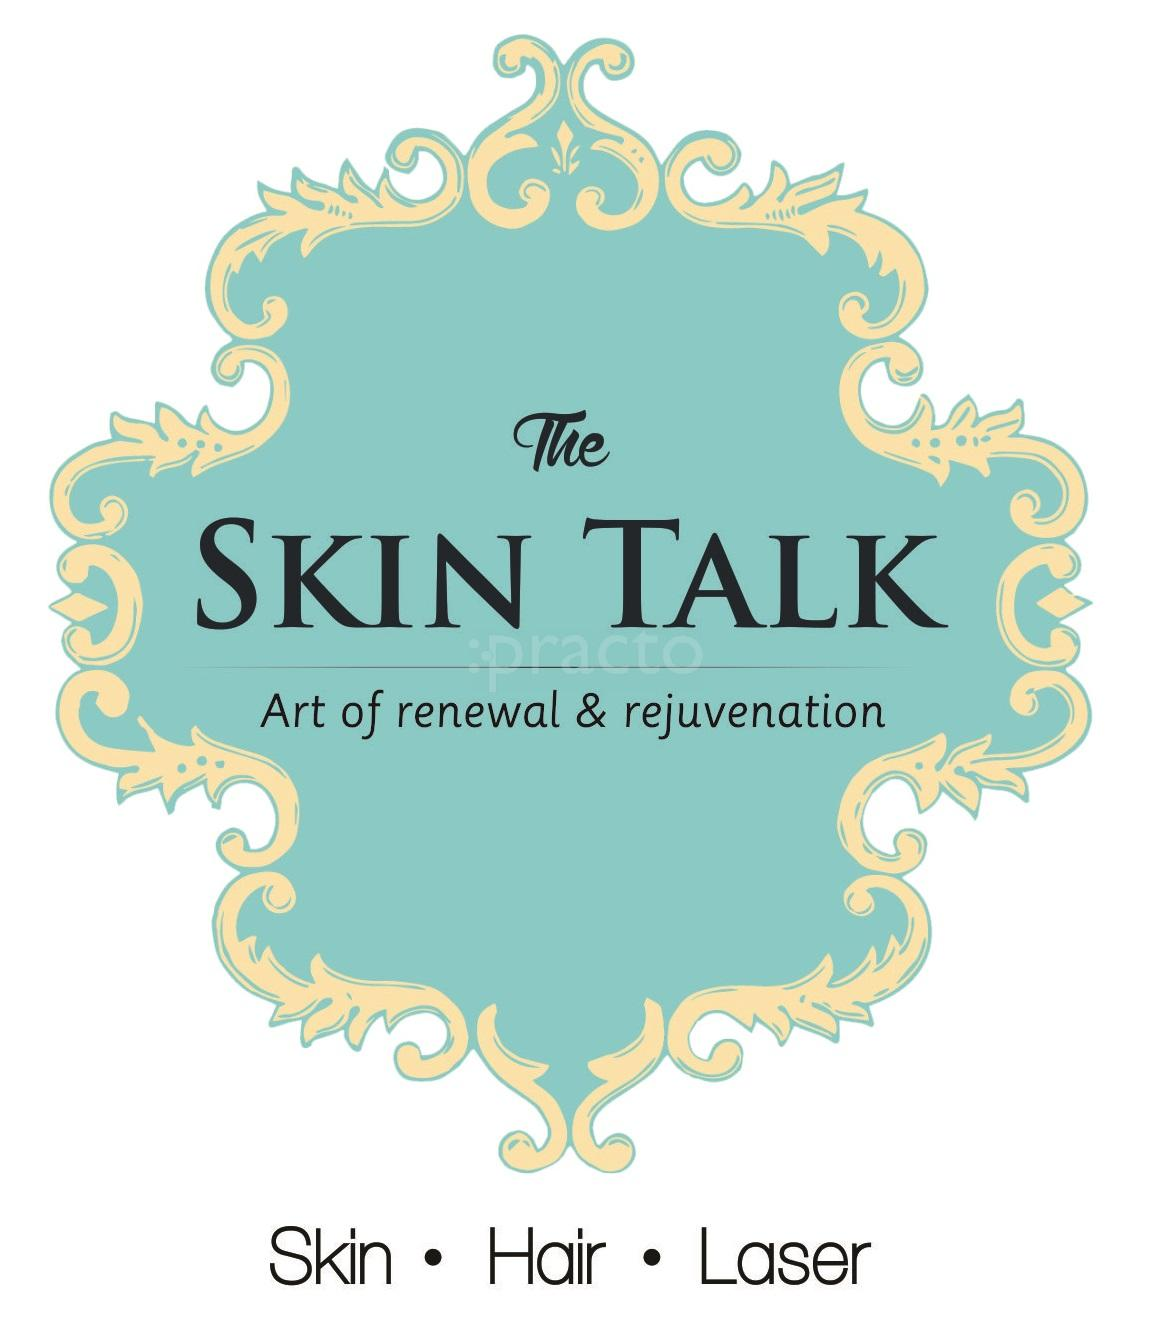 The Skin Talk Clinic